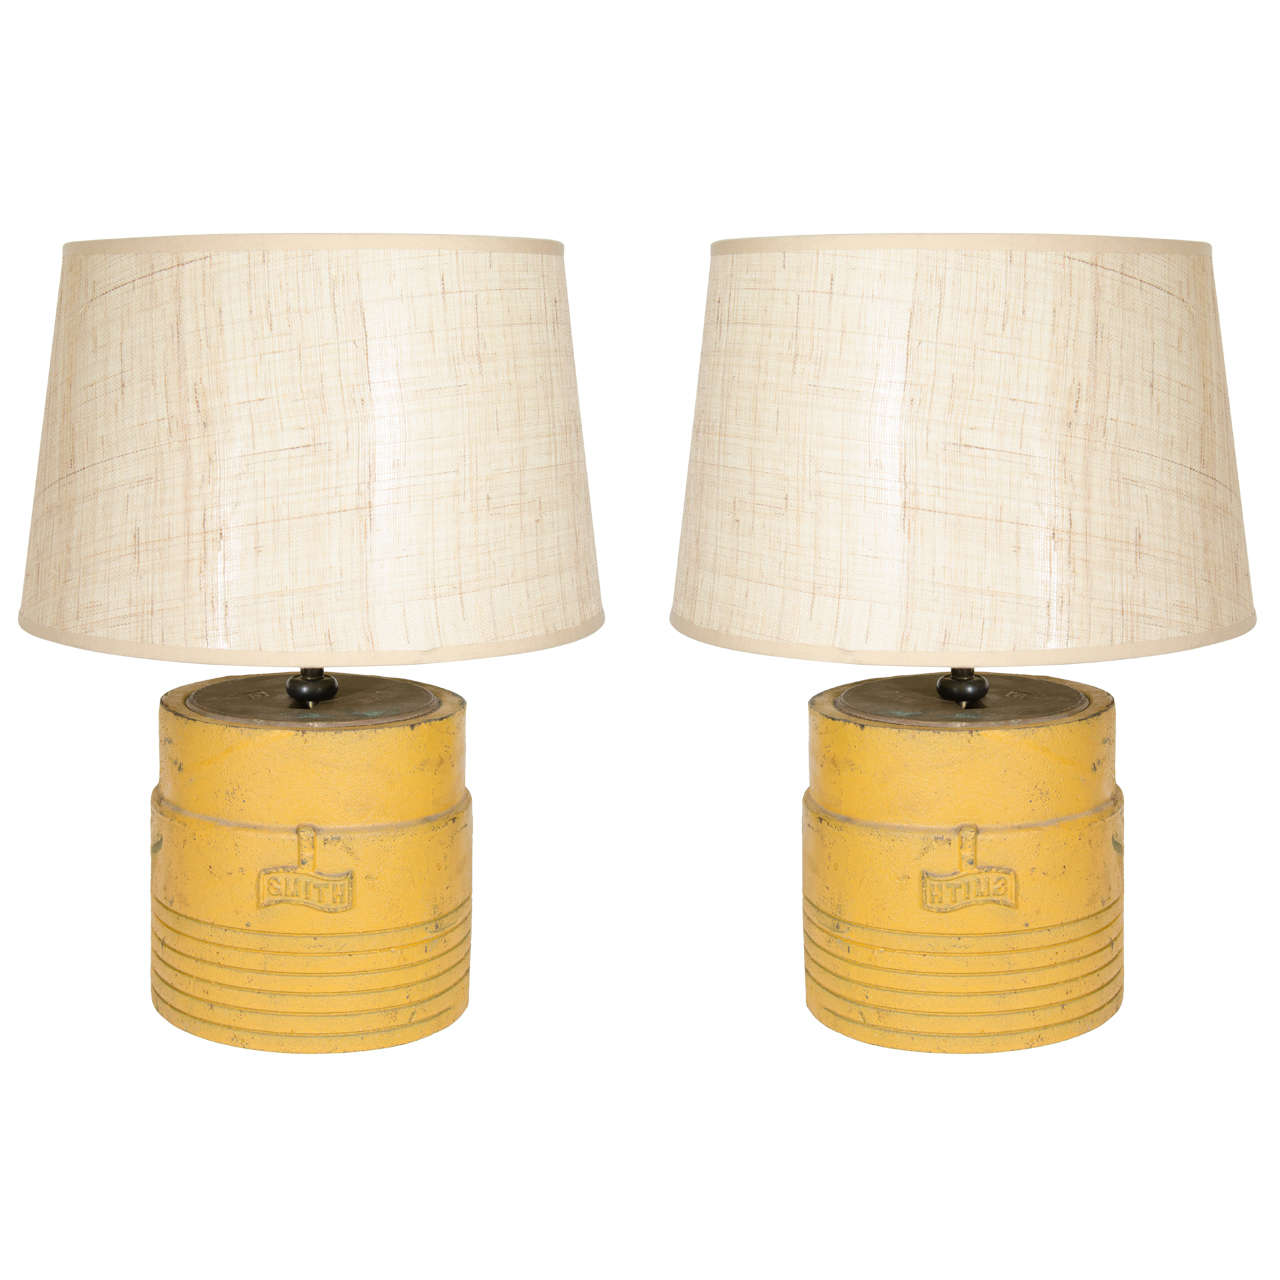 Industrial pair of cast iron table lamps made from oil well industrial pair of cast iron table lamps made from oil well drilling sleeves 1 geotapseo Choice Image